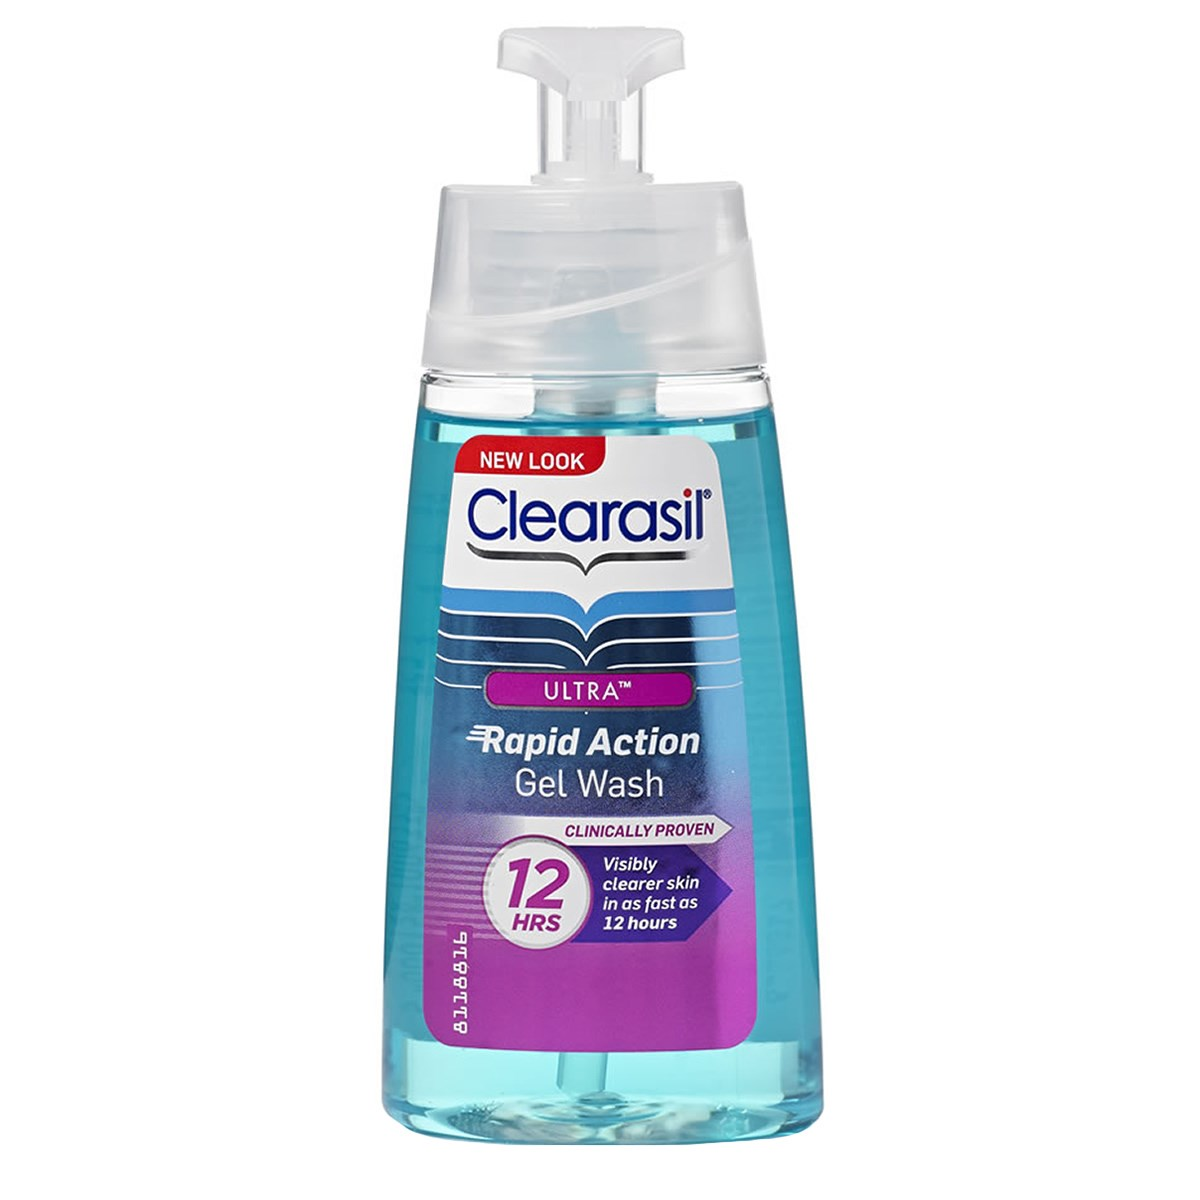 Clearasil Ultra Rapid Action Gel Wash